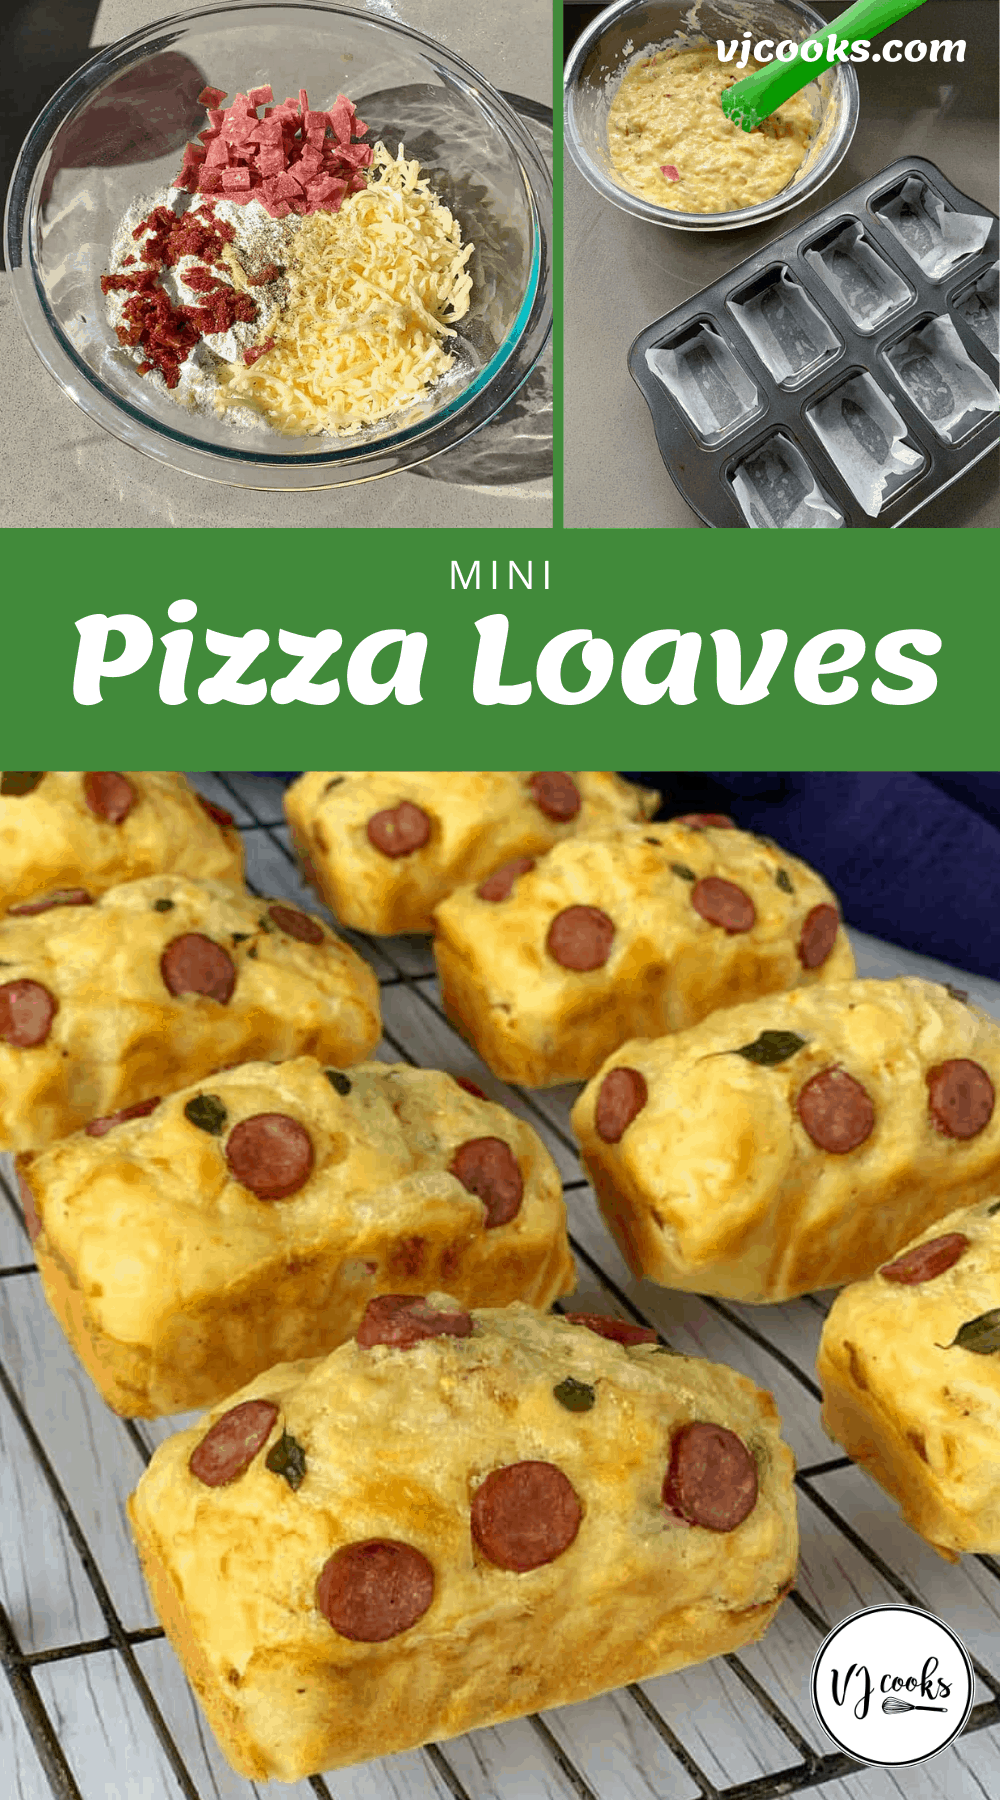 Mini Pizza Loaves